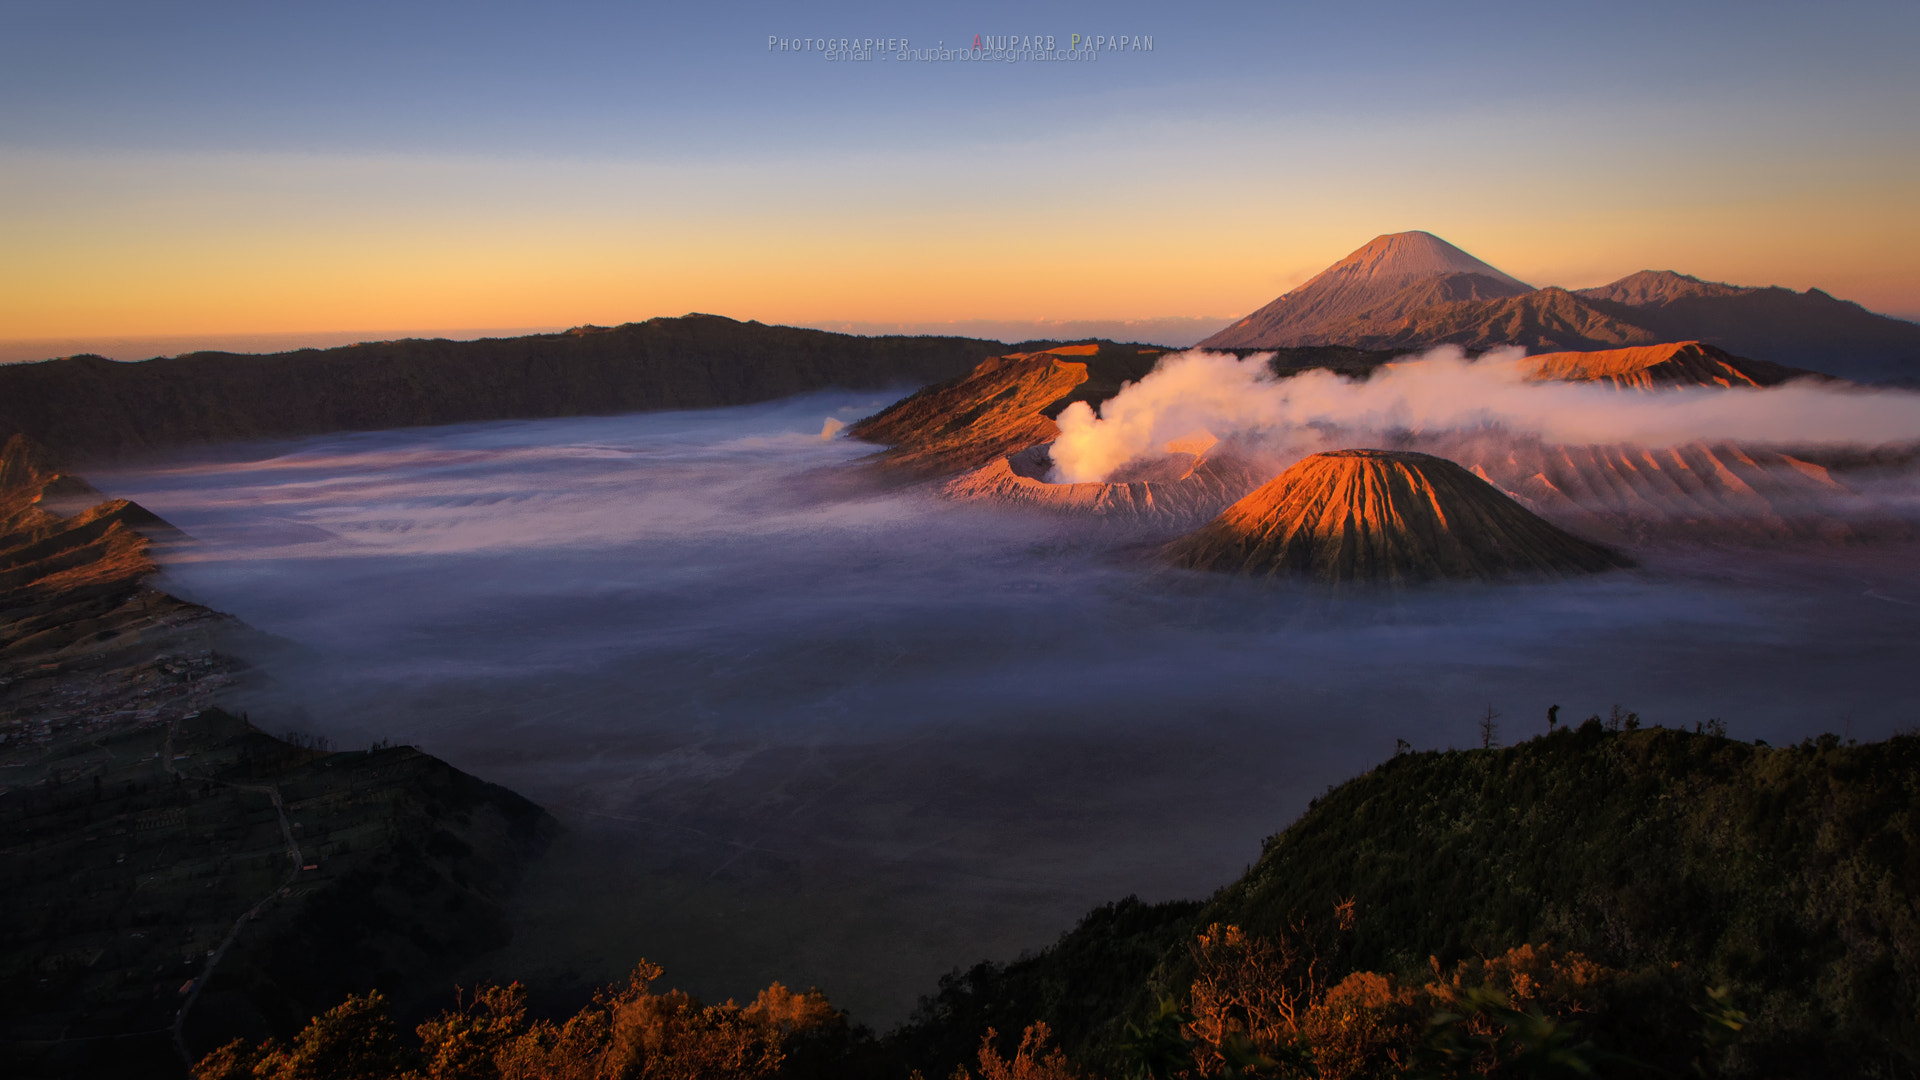 Photograph Fog & Smoke by Anuparb Papapan on 500px